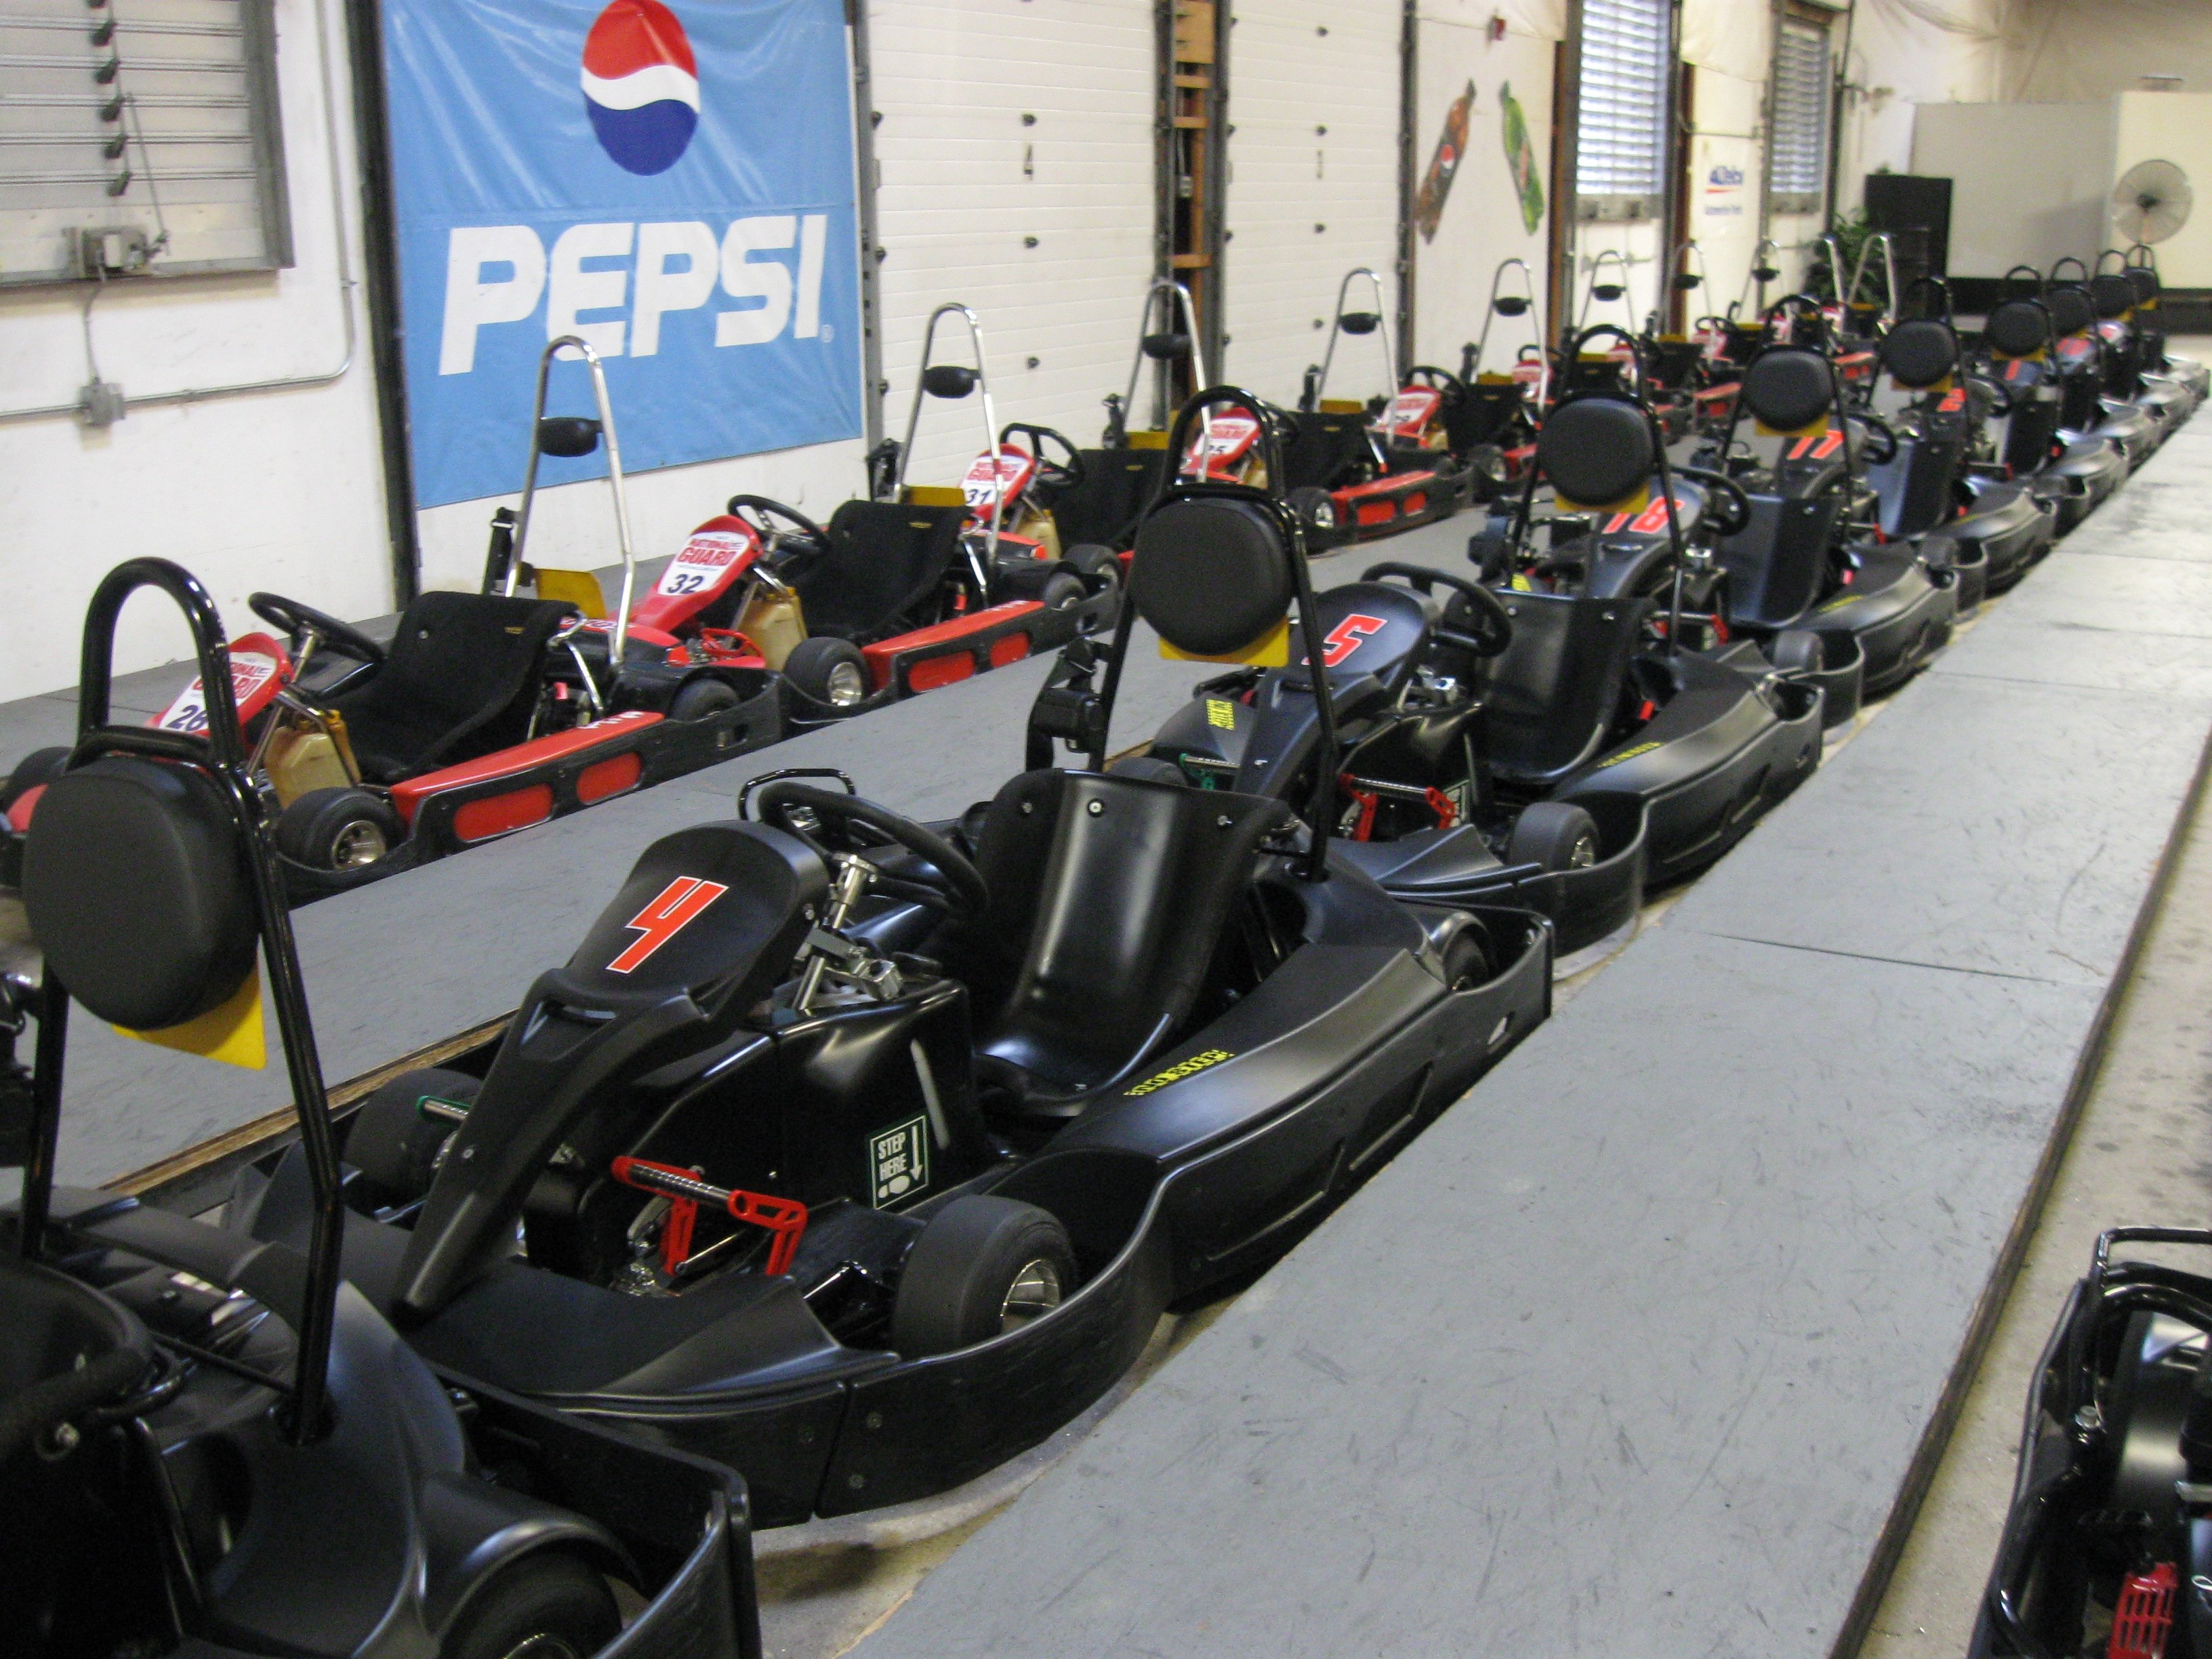 RED 5.5 HP JR KARTS & BLACK 6.5 HP ADULT KARTS